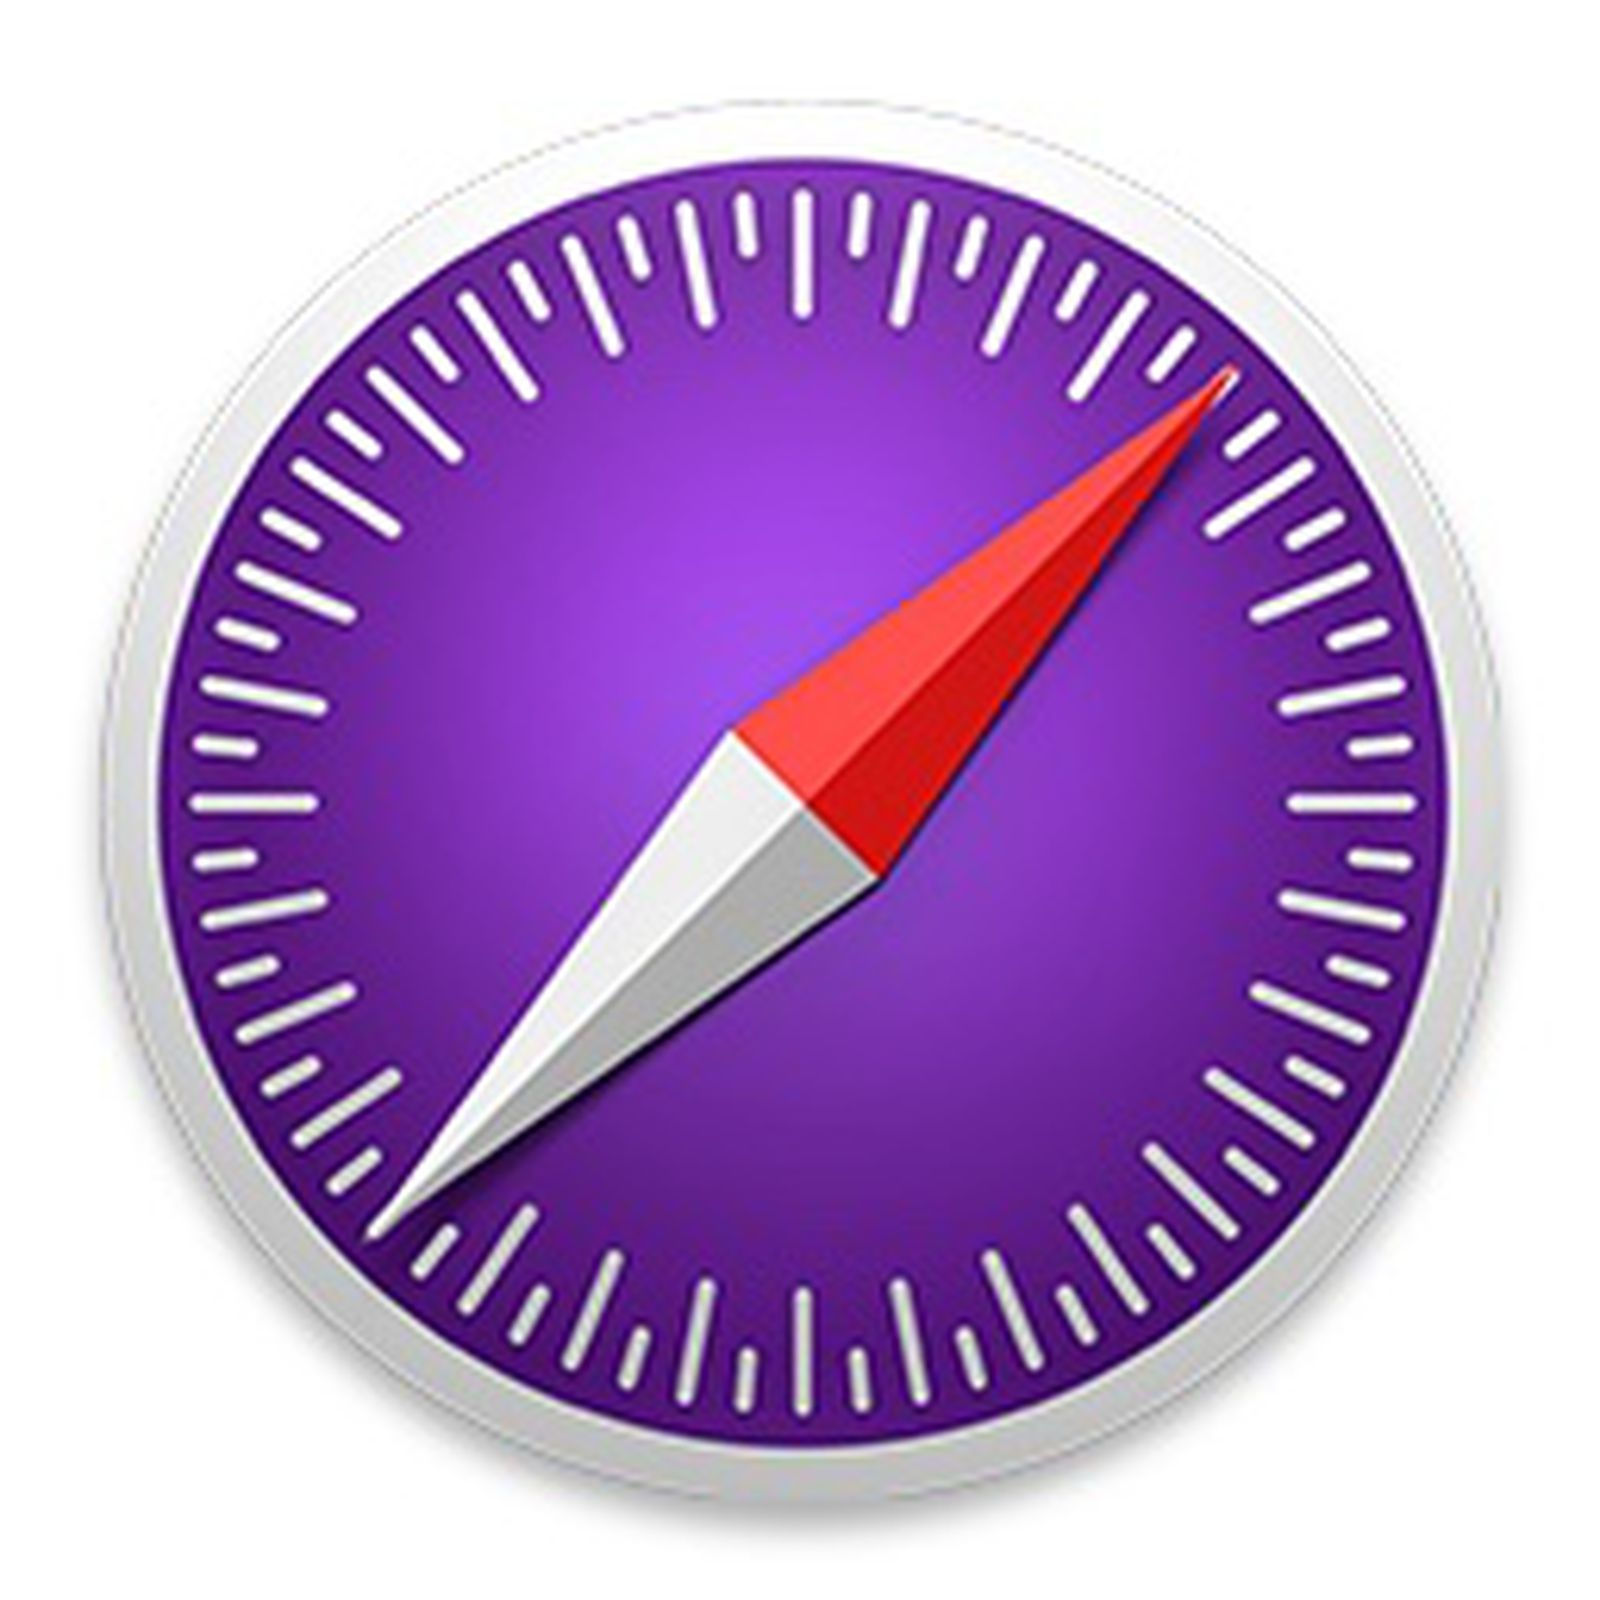 Apple Releases Safari Technology Preview 120 With Bug Fixes and Performance Improvements